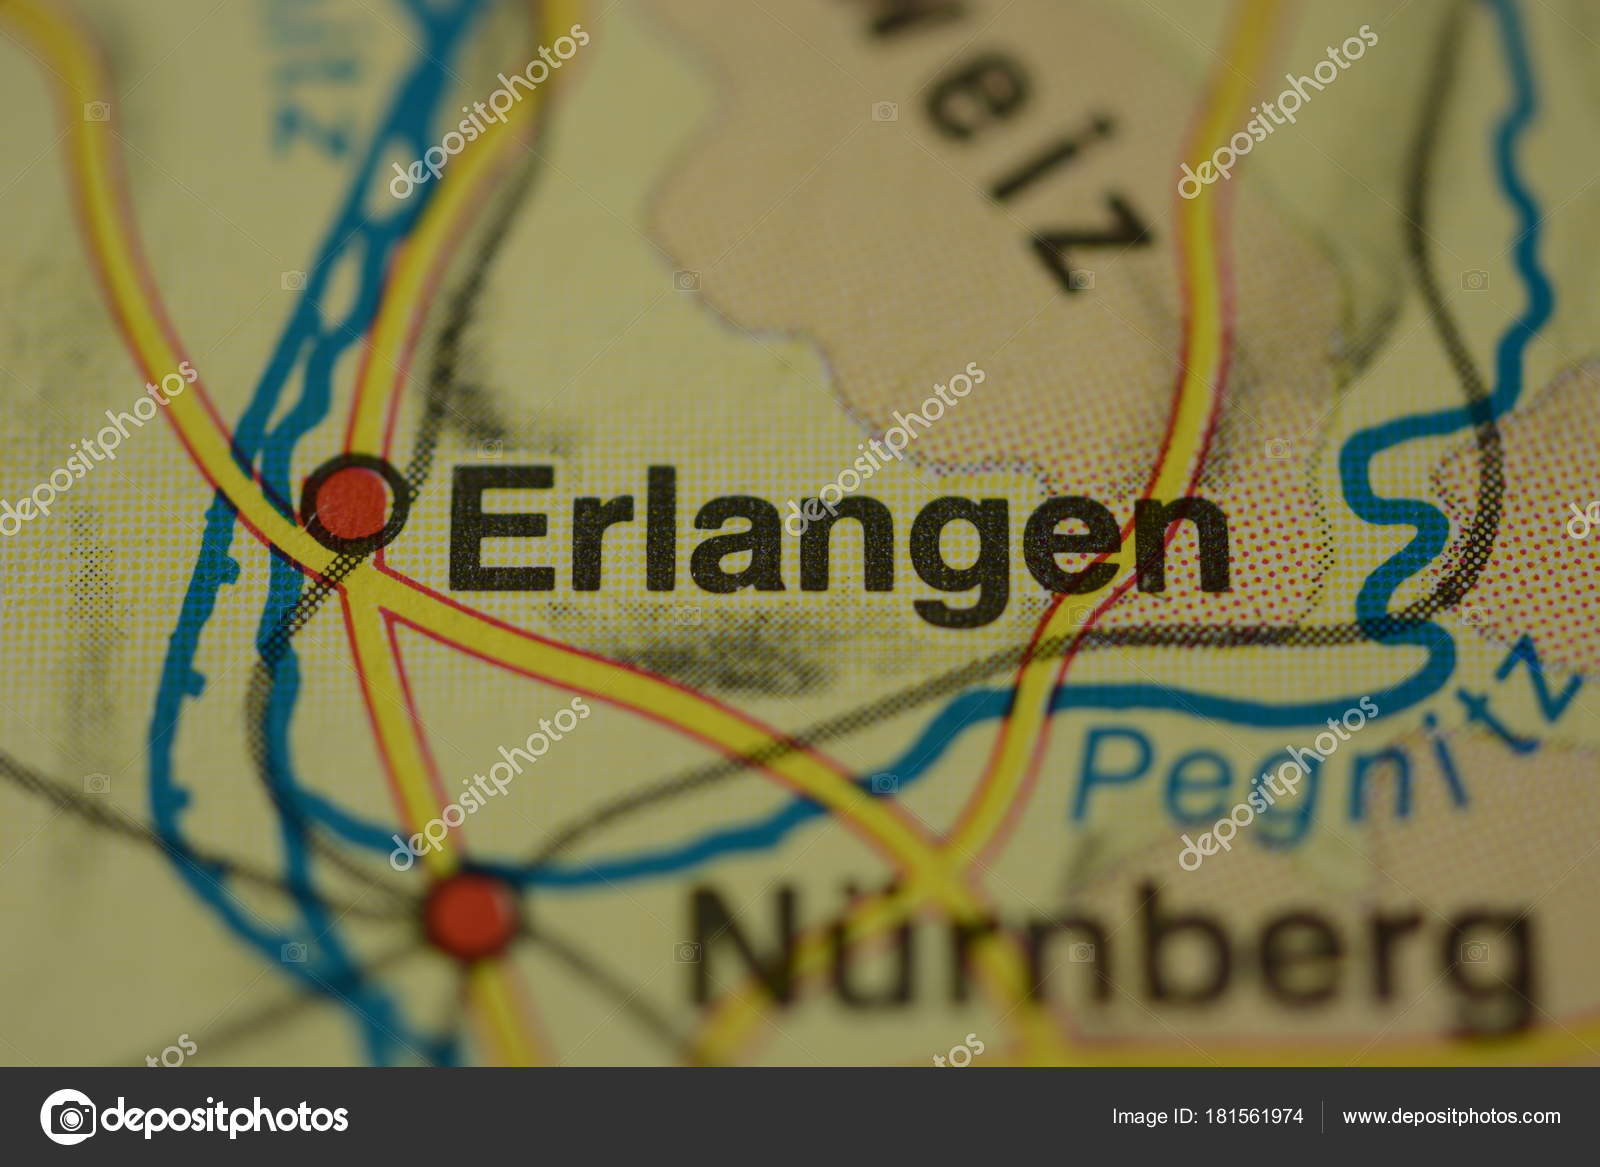 Map Of Germany Nuremberg.City Name Erlangen Nuremberg Germany Map Stock Photo